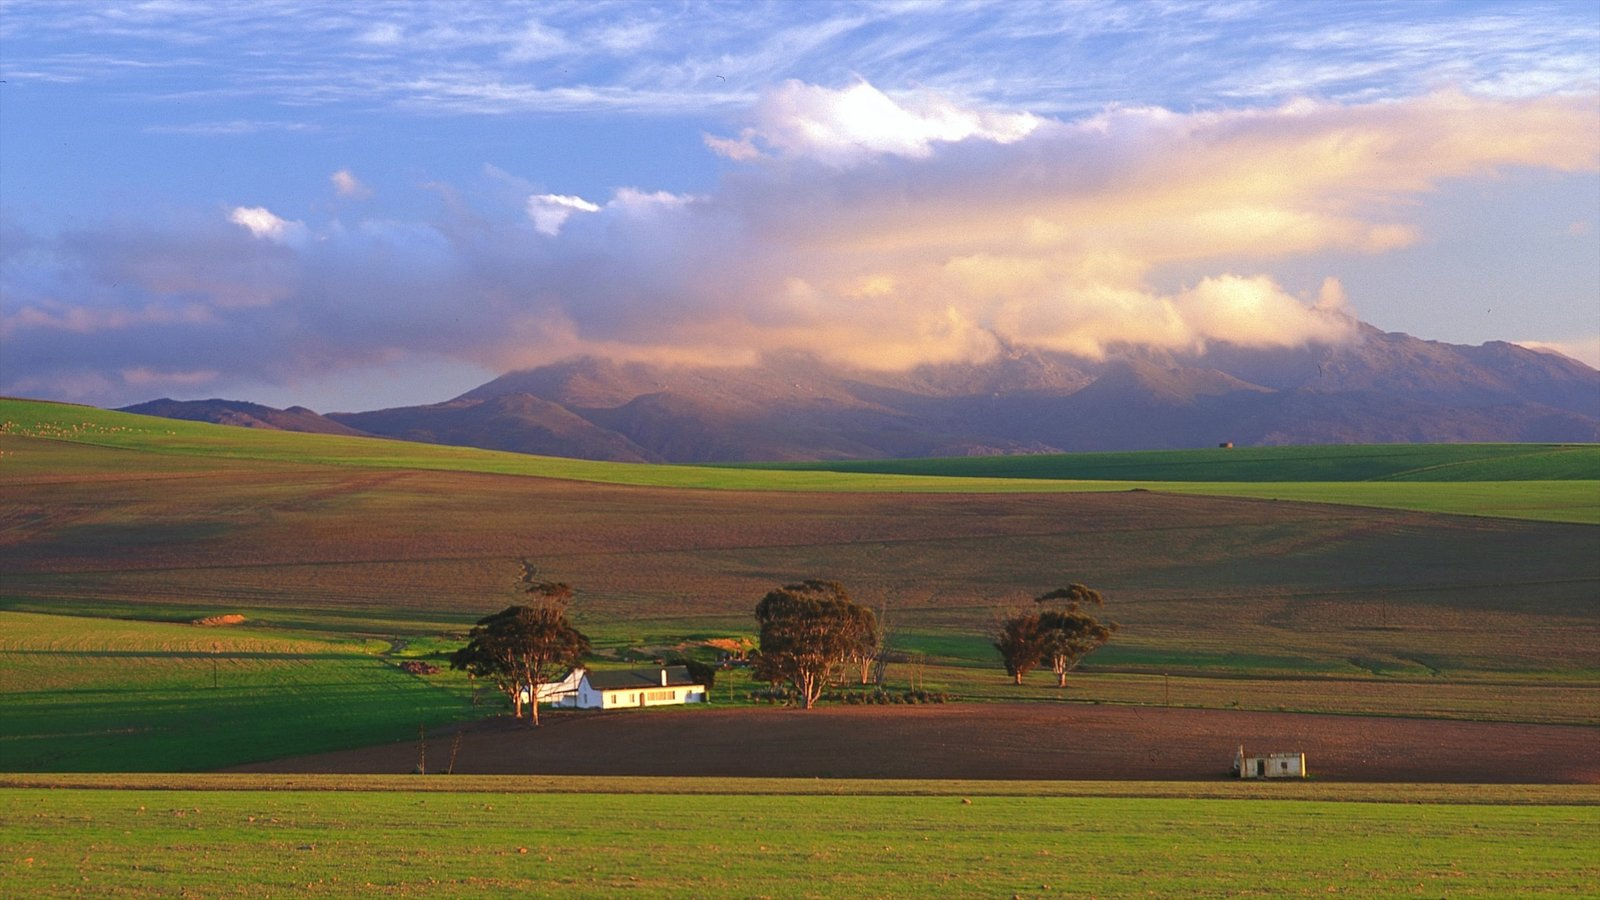 Caledon showing tranquil scenes and landscape views